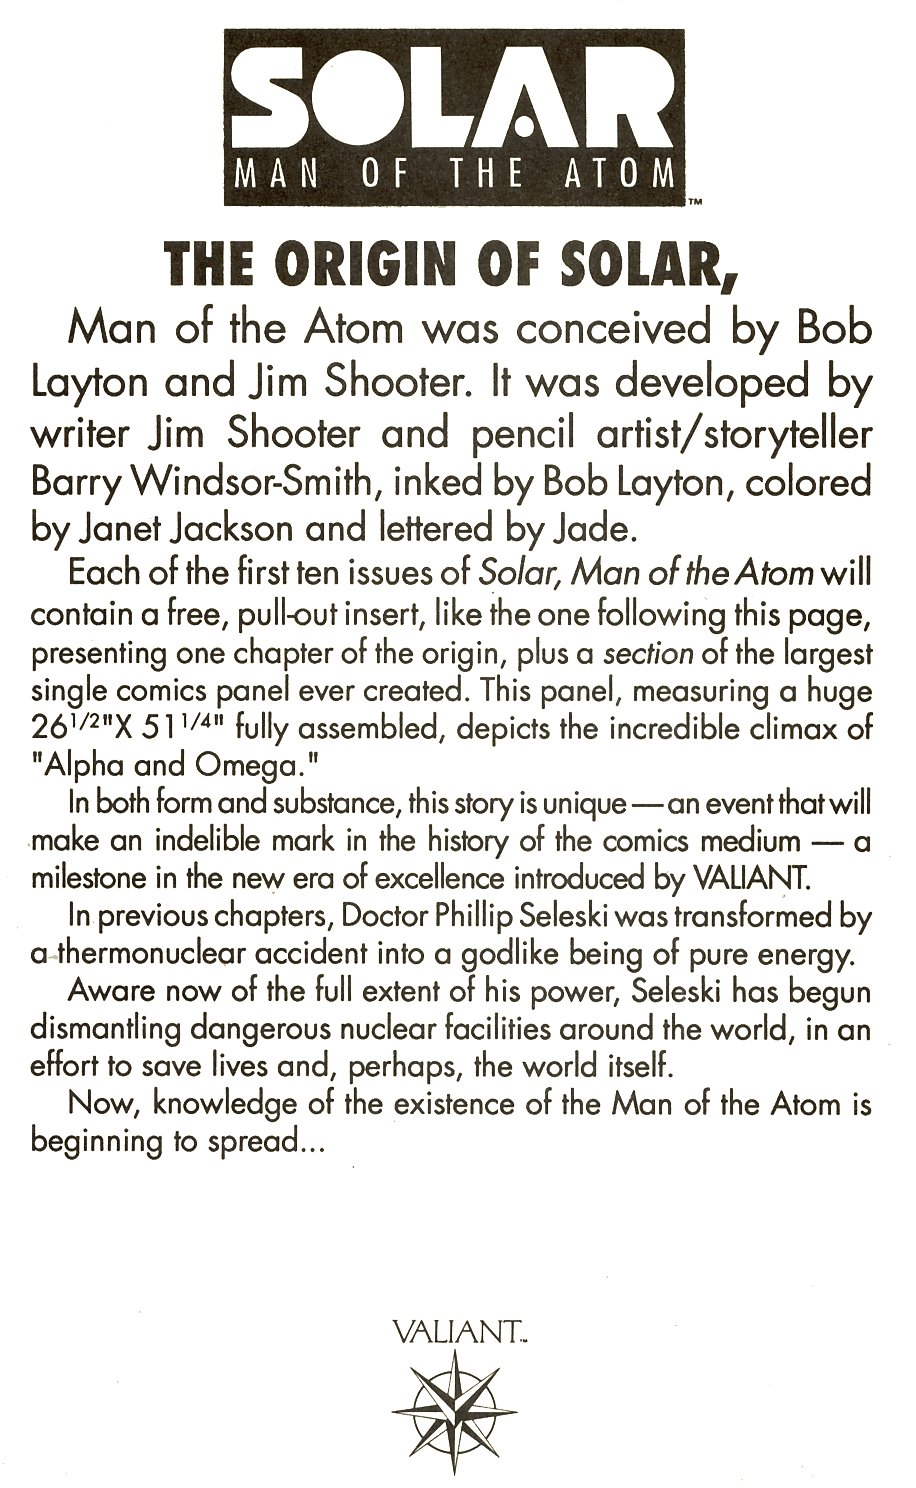 Read online Solar, Man of the Atom comic -  Issue #8 - 18